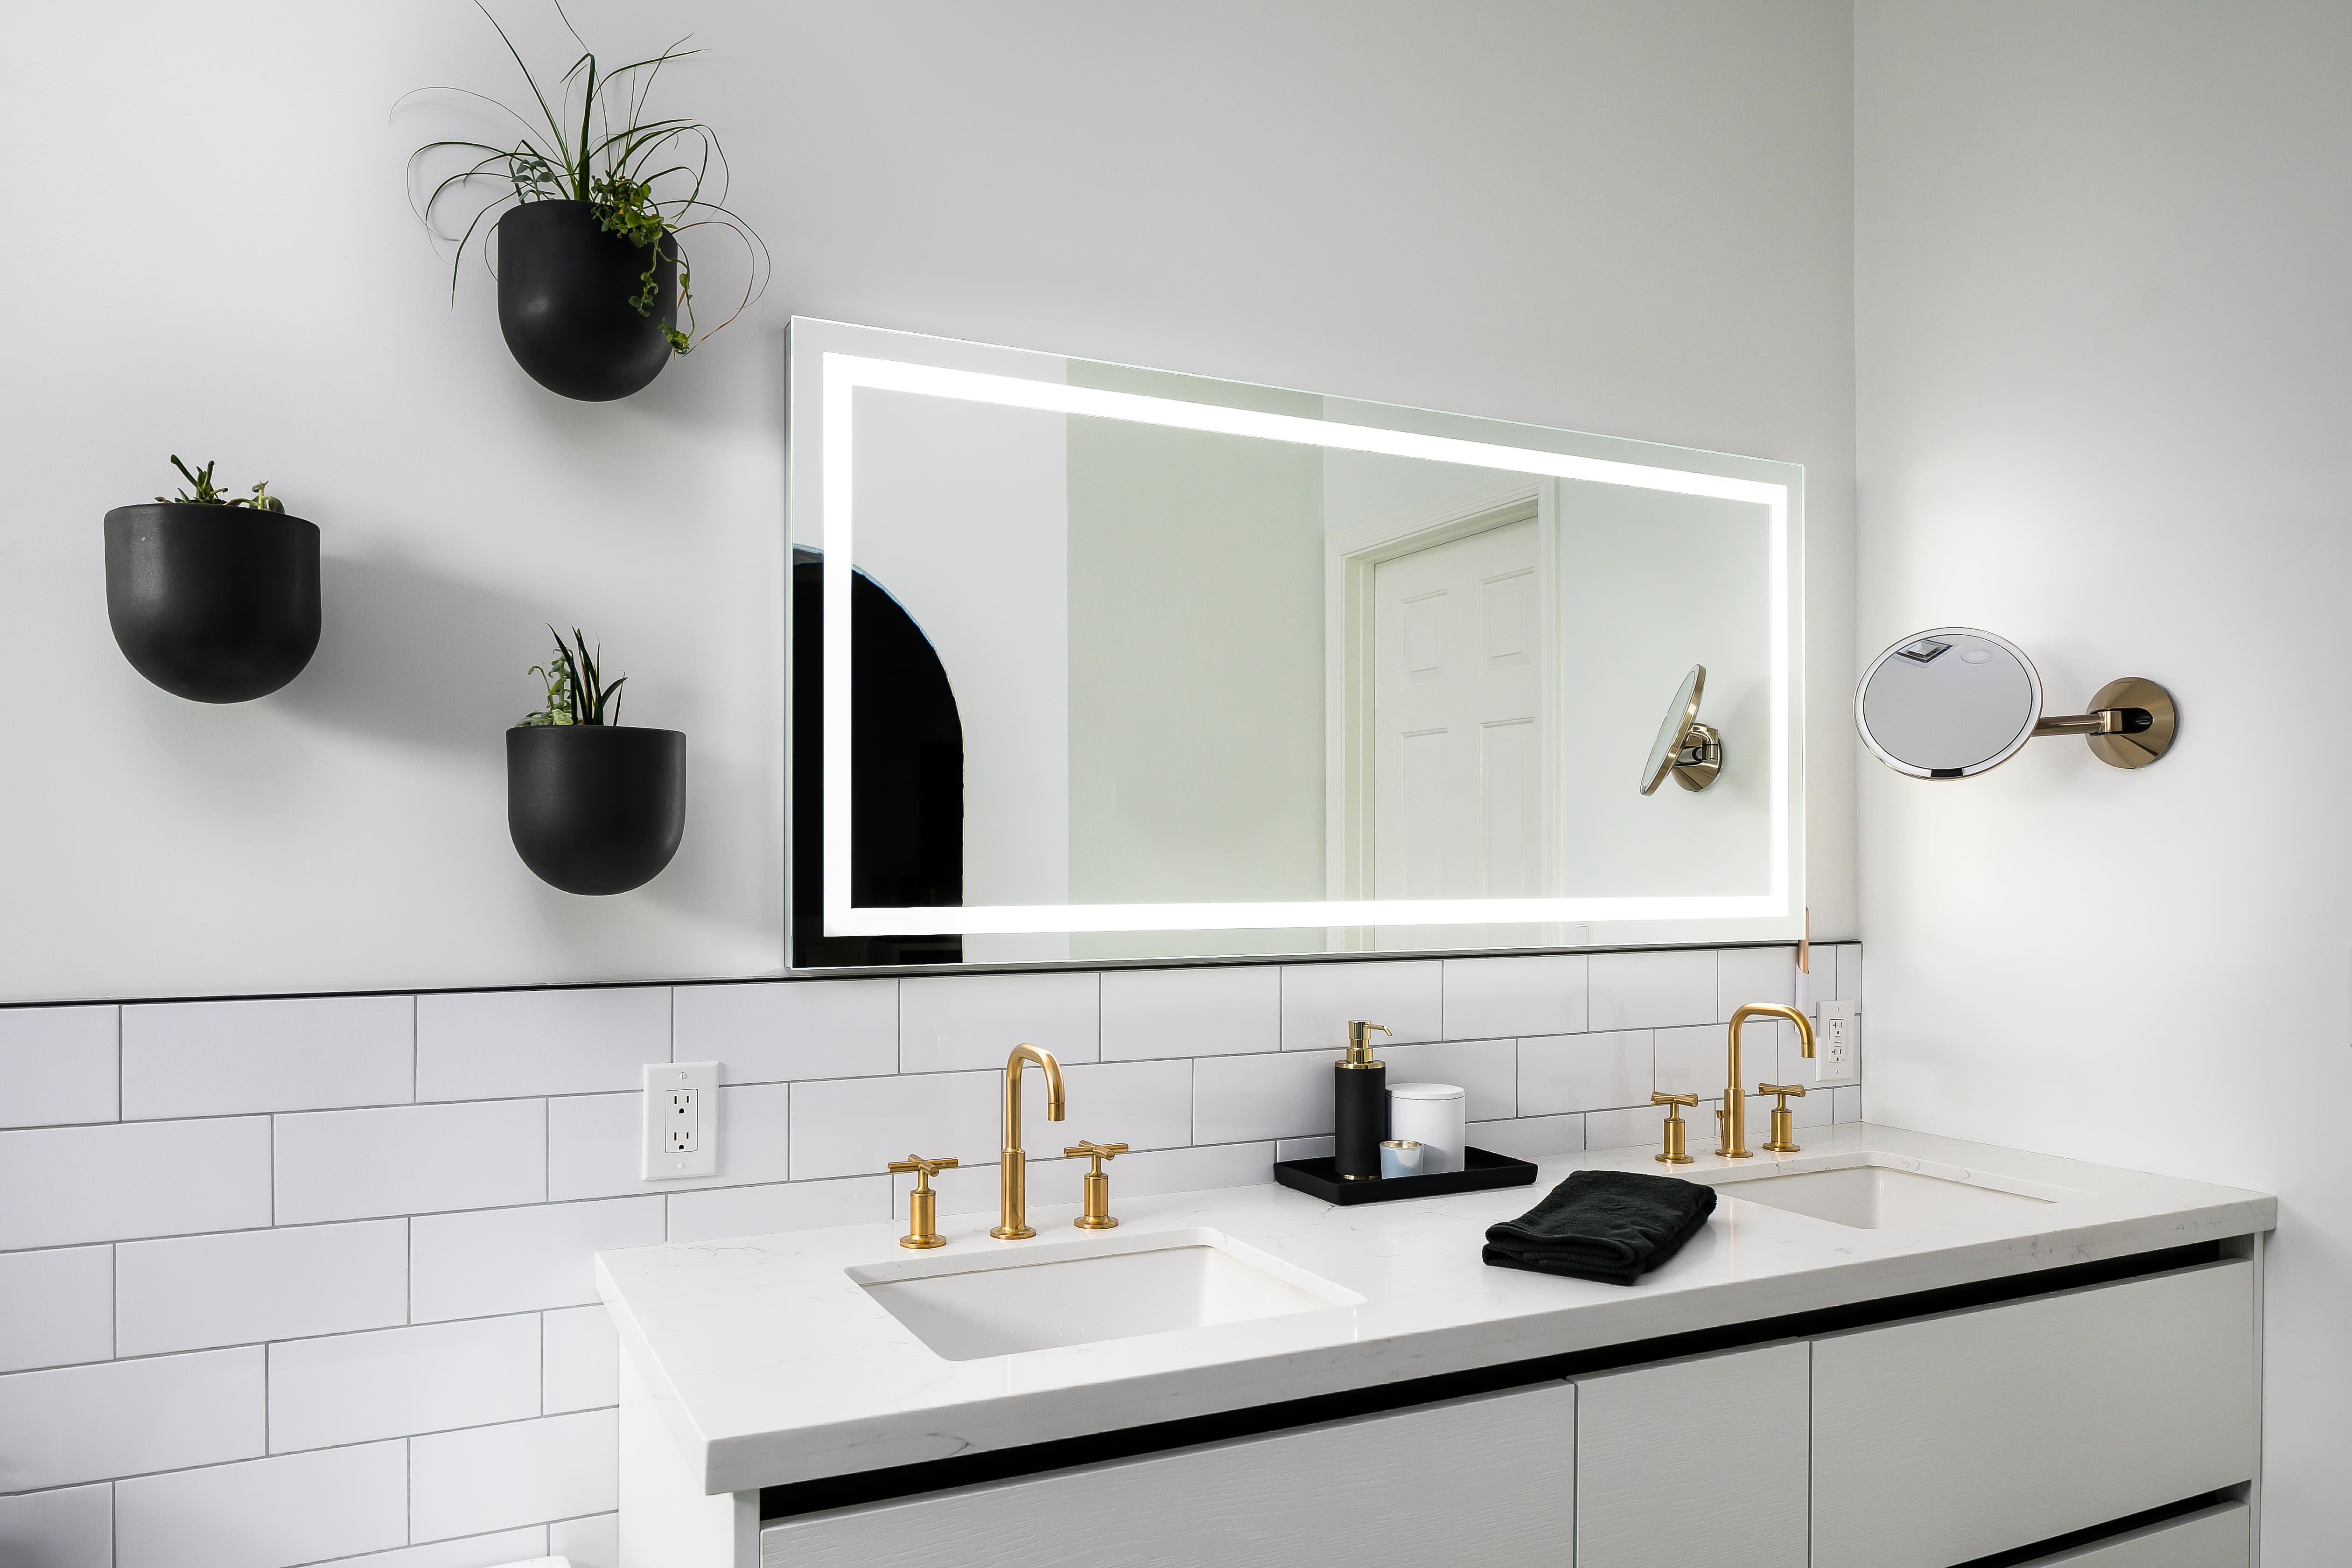 Design Build Bathroom Remodel Contractor in Tempe